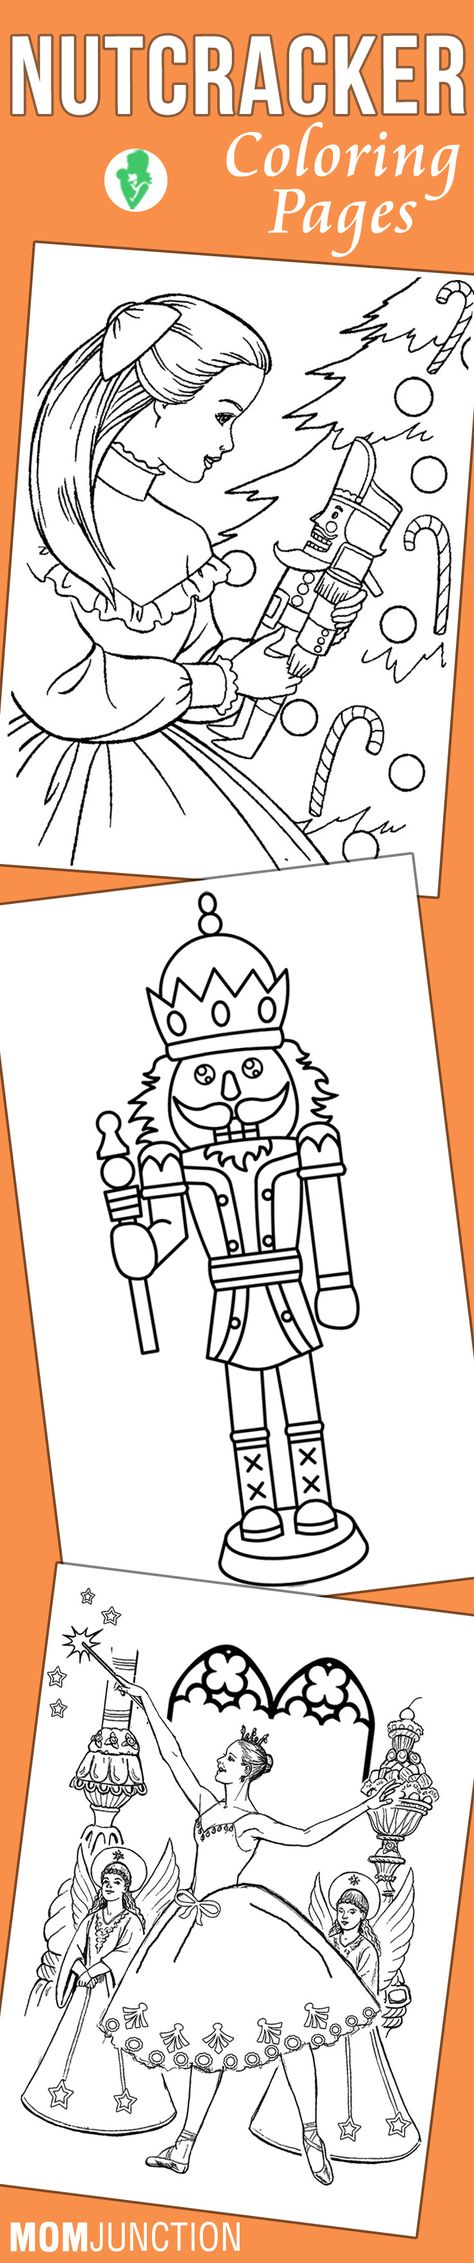 Top 20 Free Printable Nutcracker Coloring Pages Online Coloring Pages Christmas Coloring Pages Nutcracker